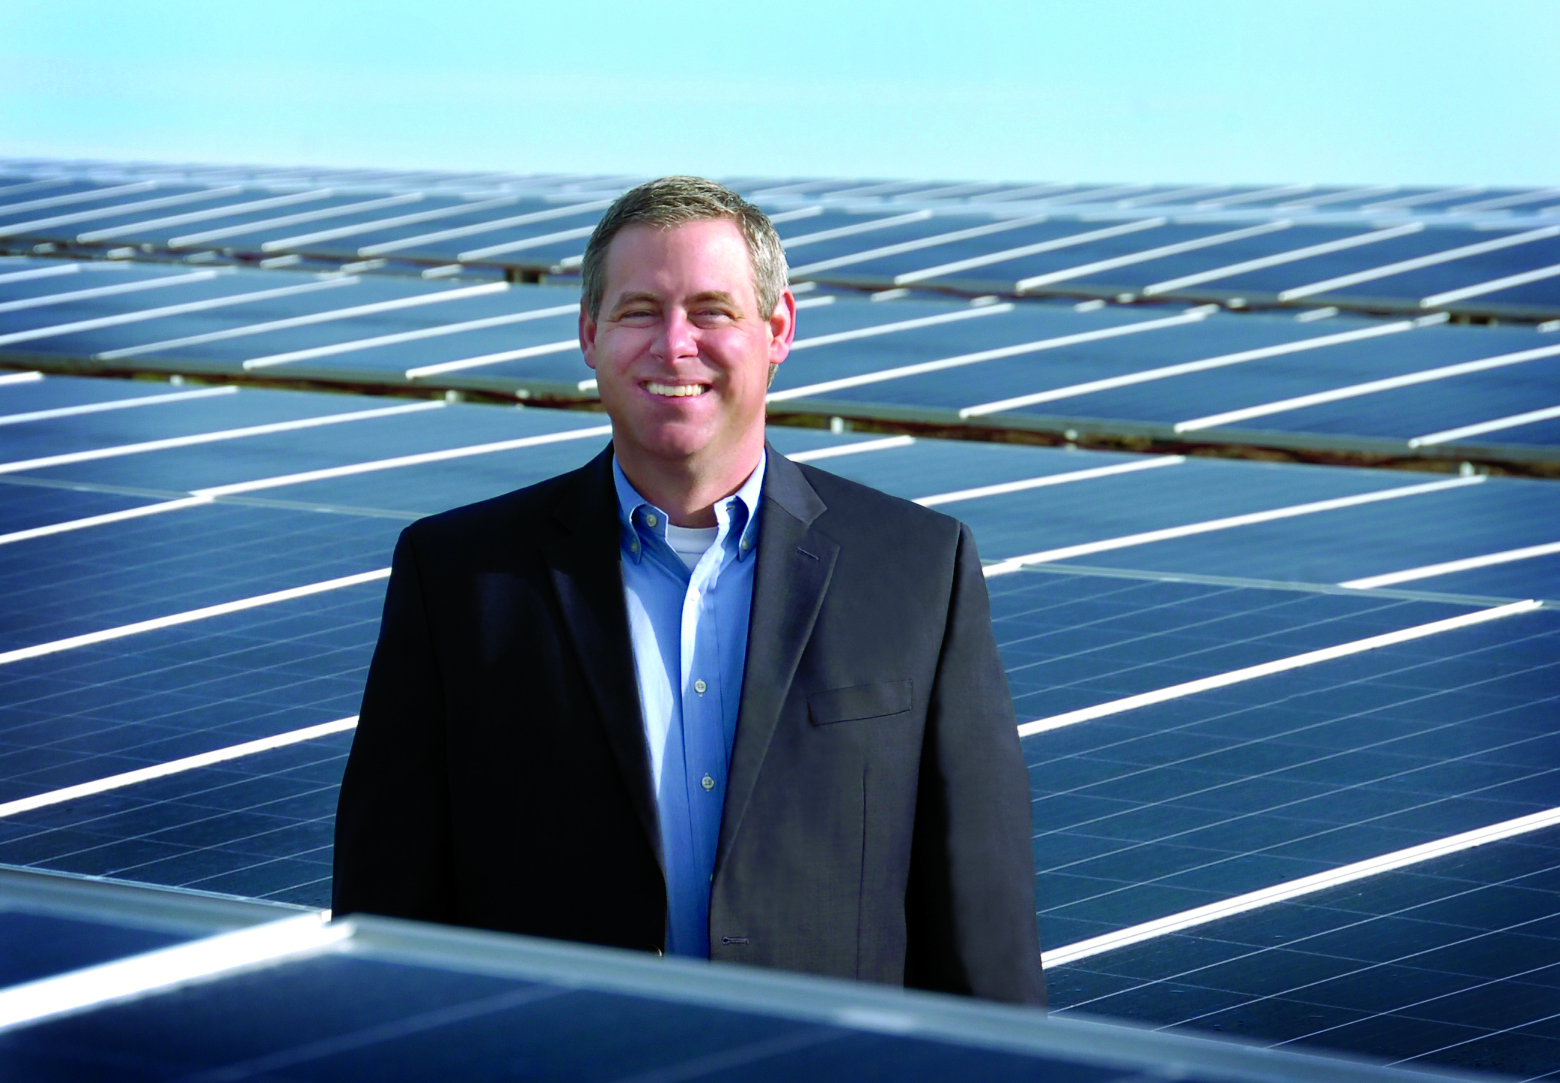 Cameron Smallwood at United's Community Solar site